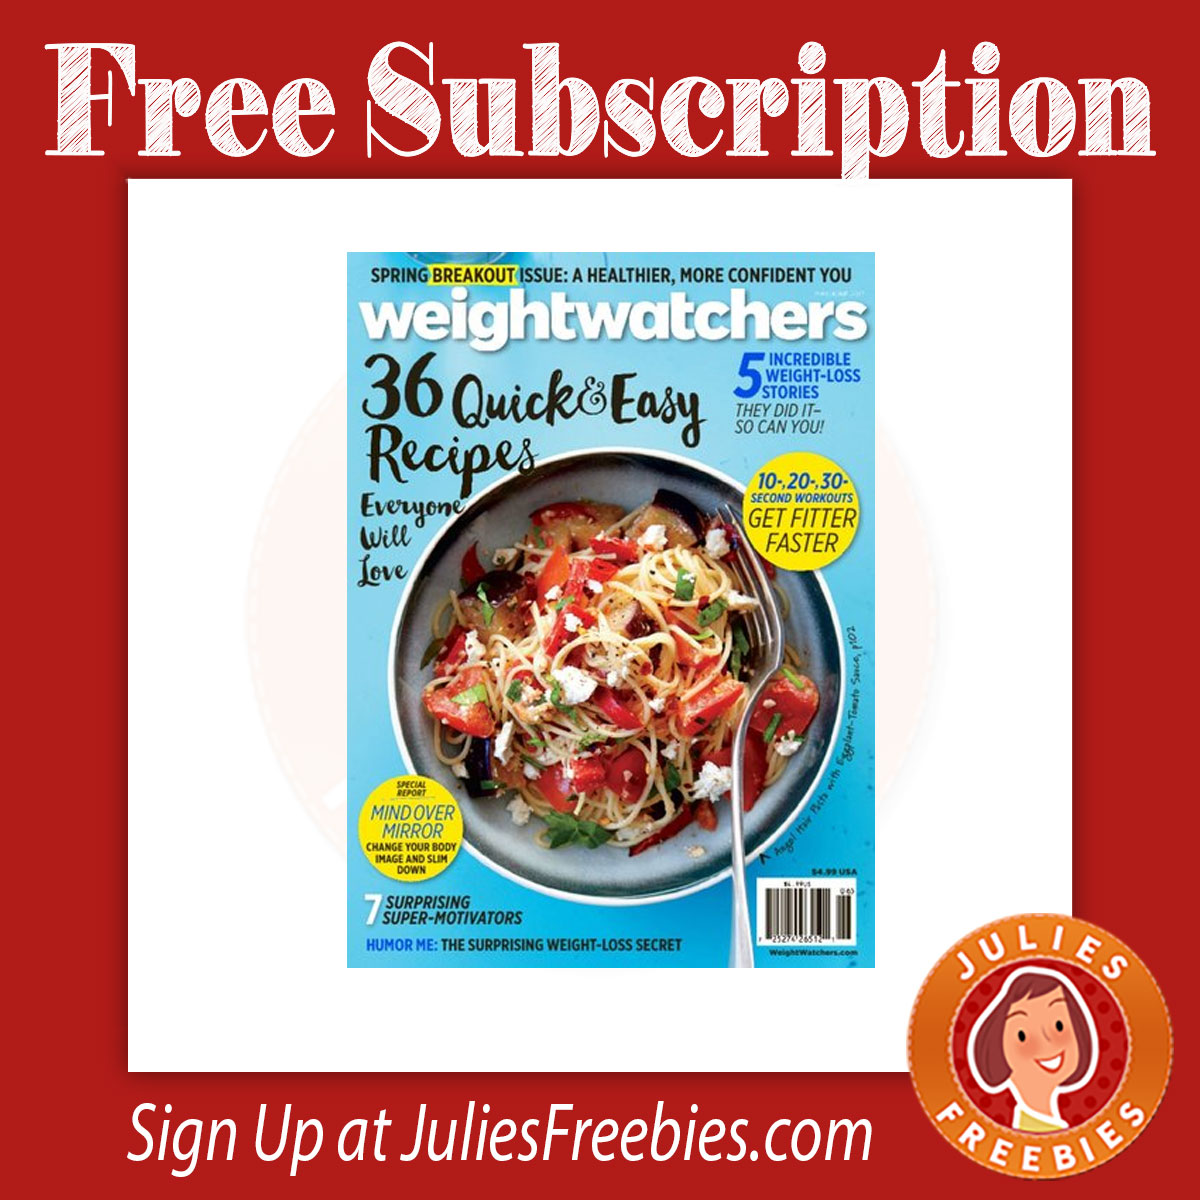 Weight watchers freebies